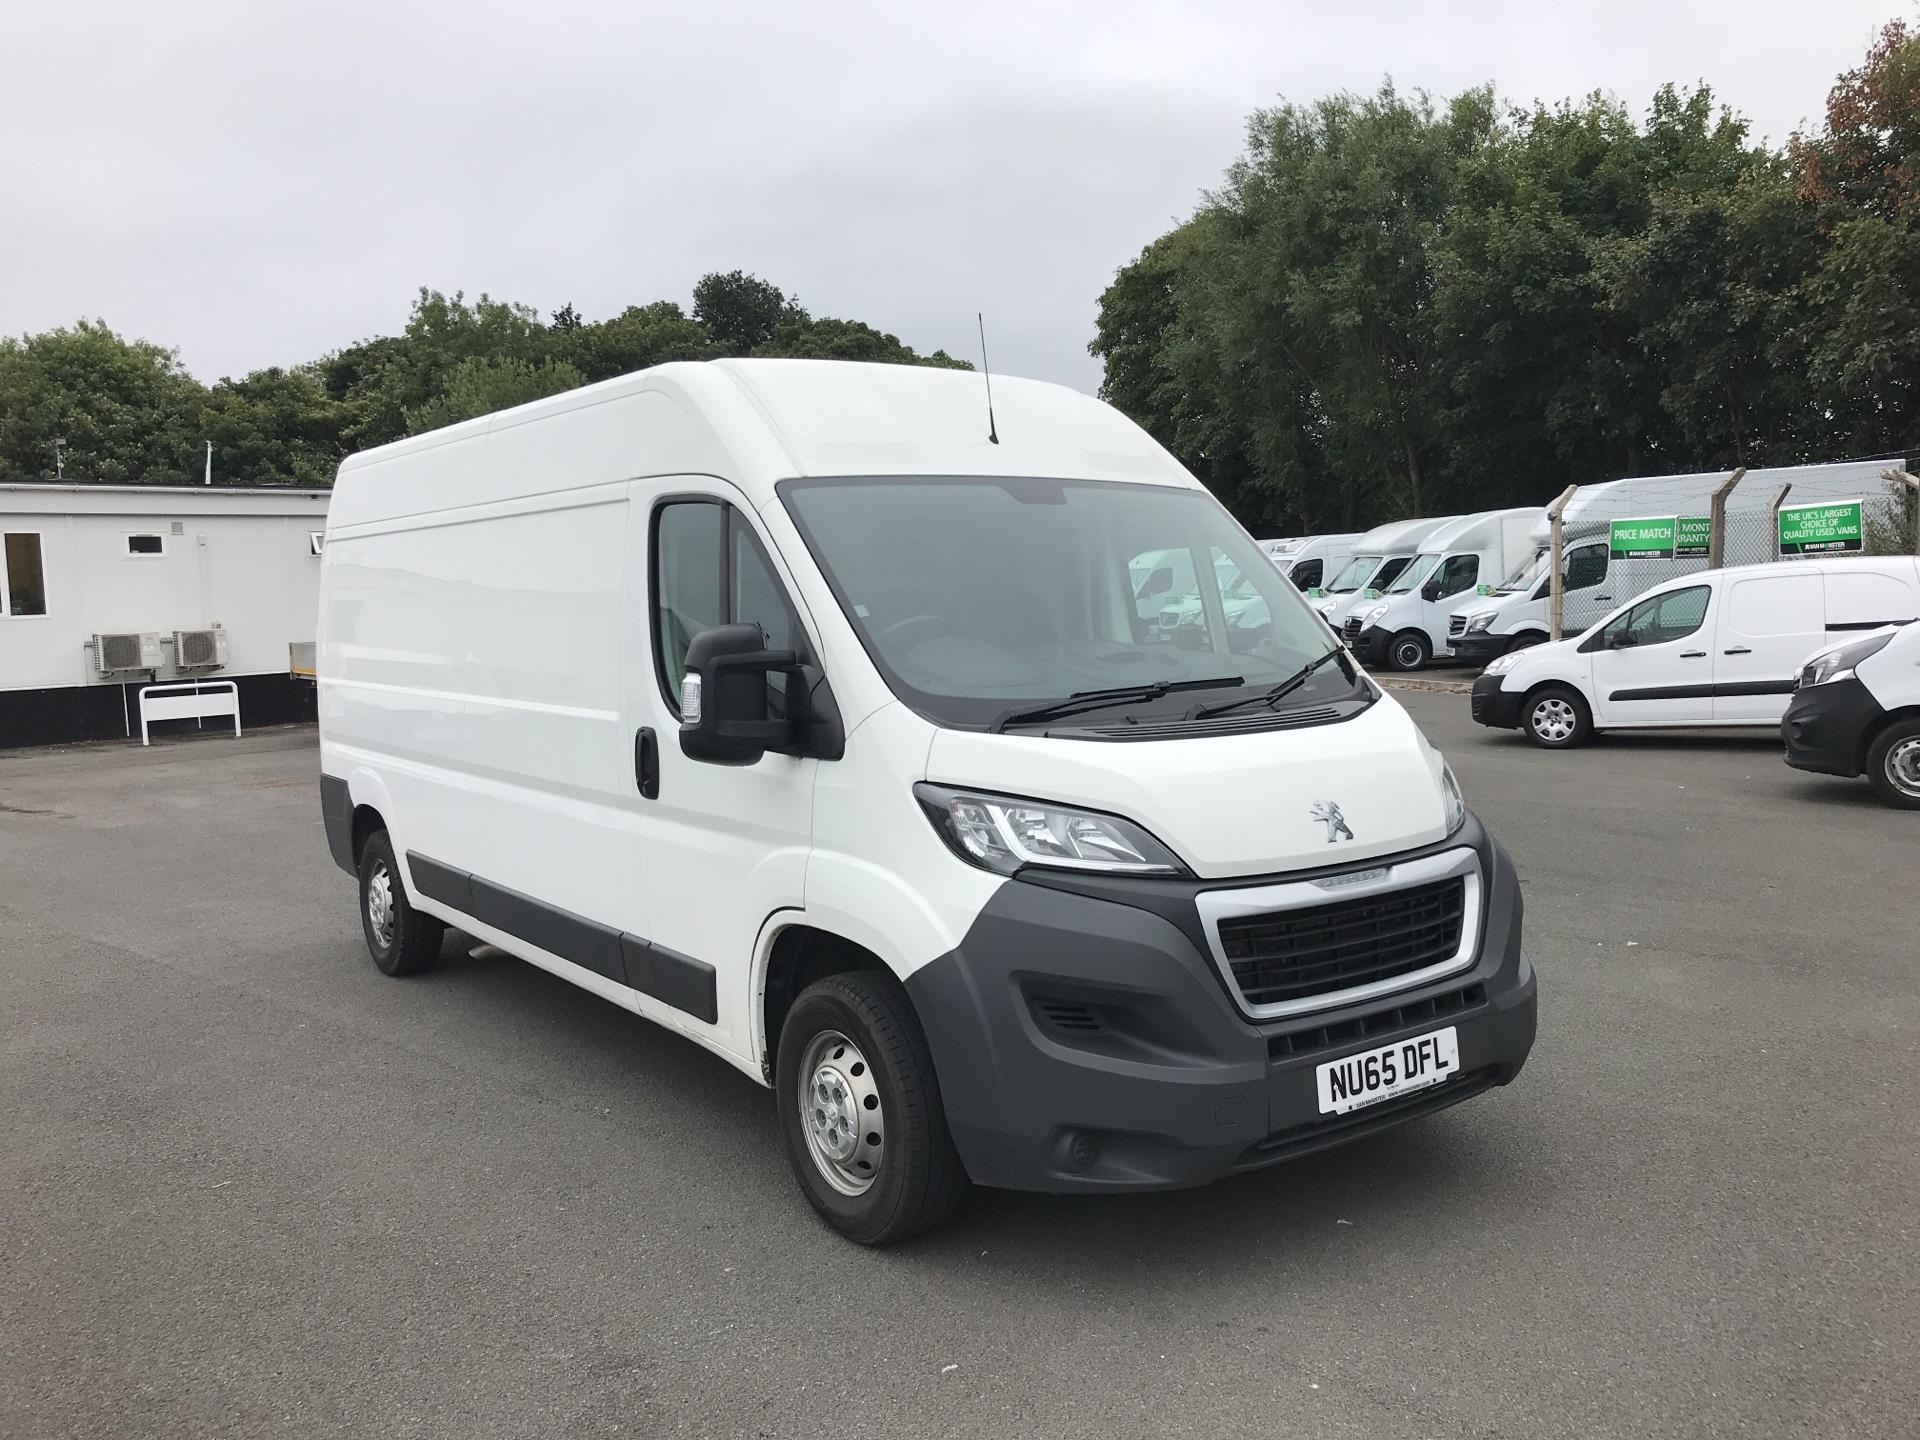 2015 Peugeot Boxer 335 2.2 HDI L3 H2 VAN 130PS *VALUE RANGE VEHICLE - CONDITION REFLECTED IN PRICE* (NU65DFL)